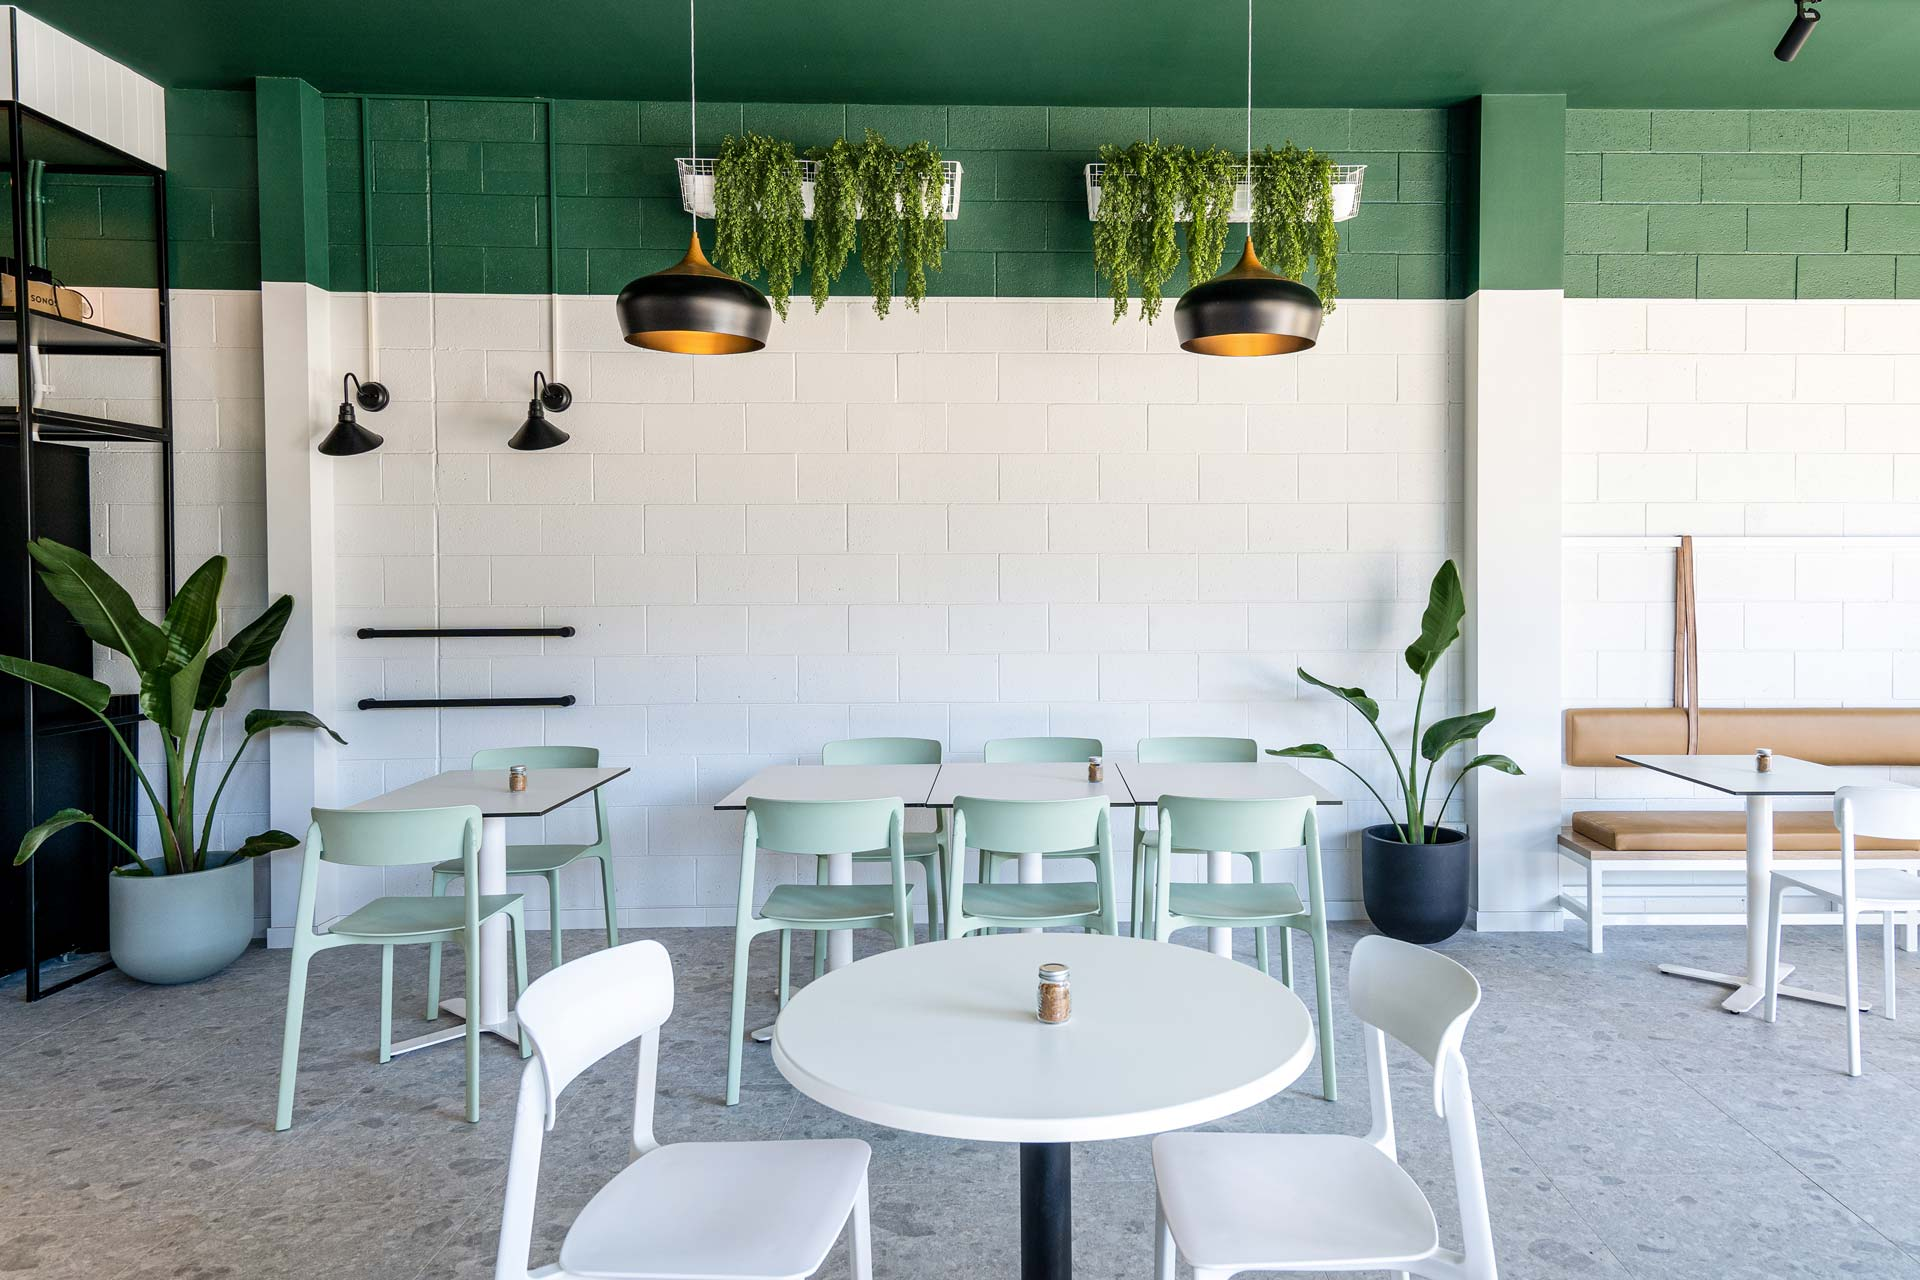 Forklore cafe fitout with a green ceiling, plants and pastel tables and chairs